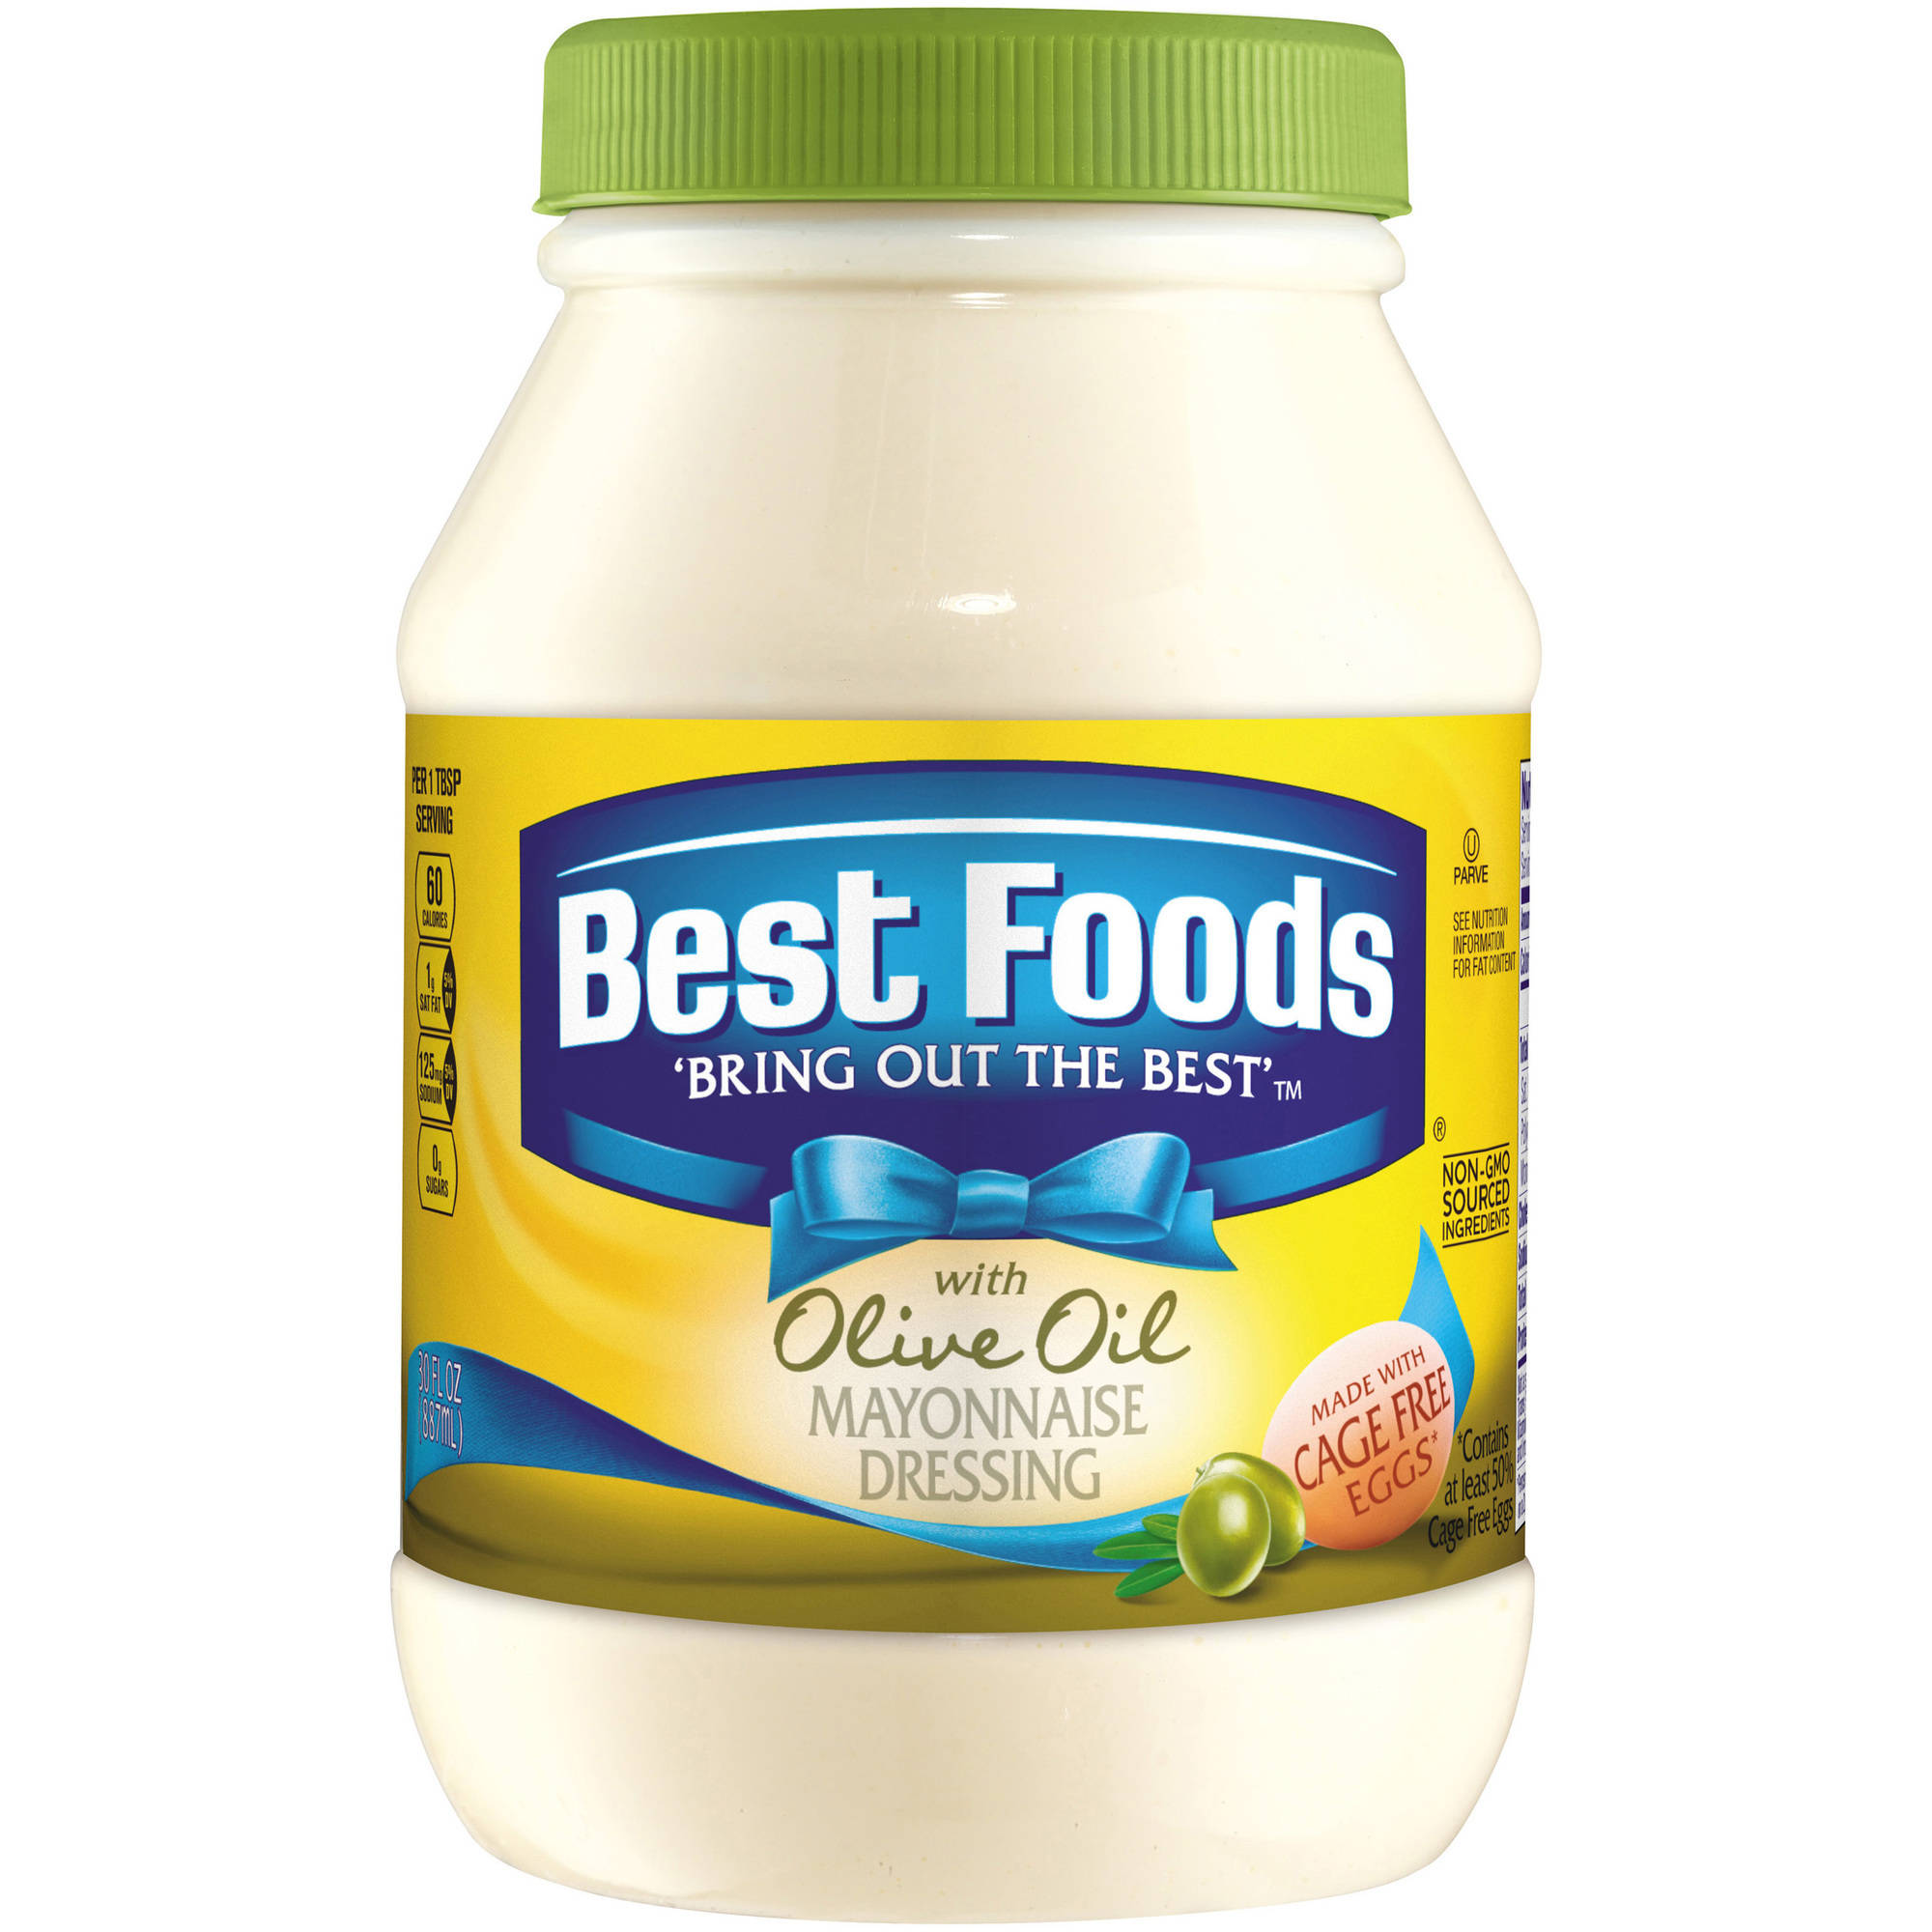 Best Foods with Olive Oil Mayonnaise Dressing, 30 oz